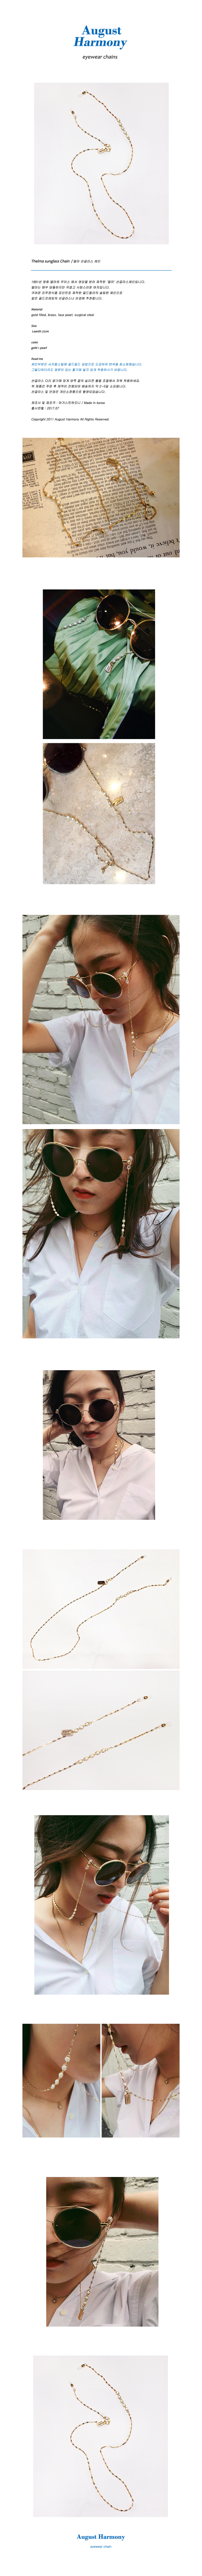 어거스트 하모니(August Harmony) Thelma sunglass chain